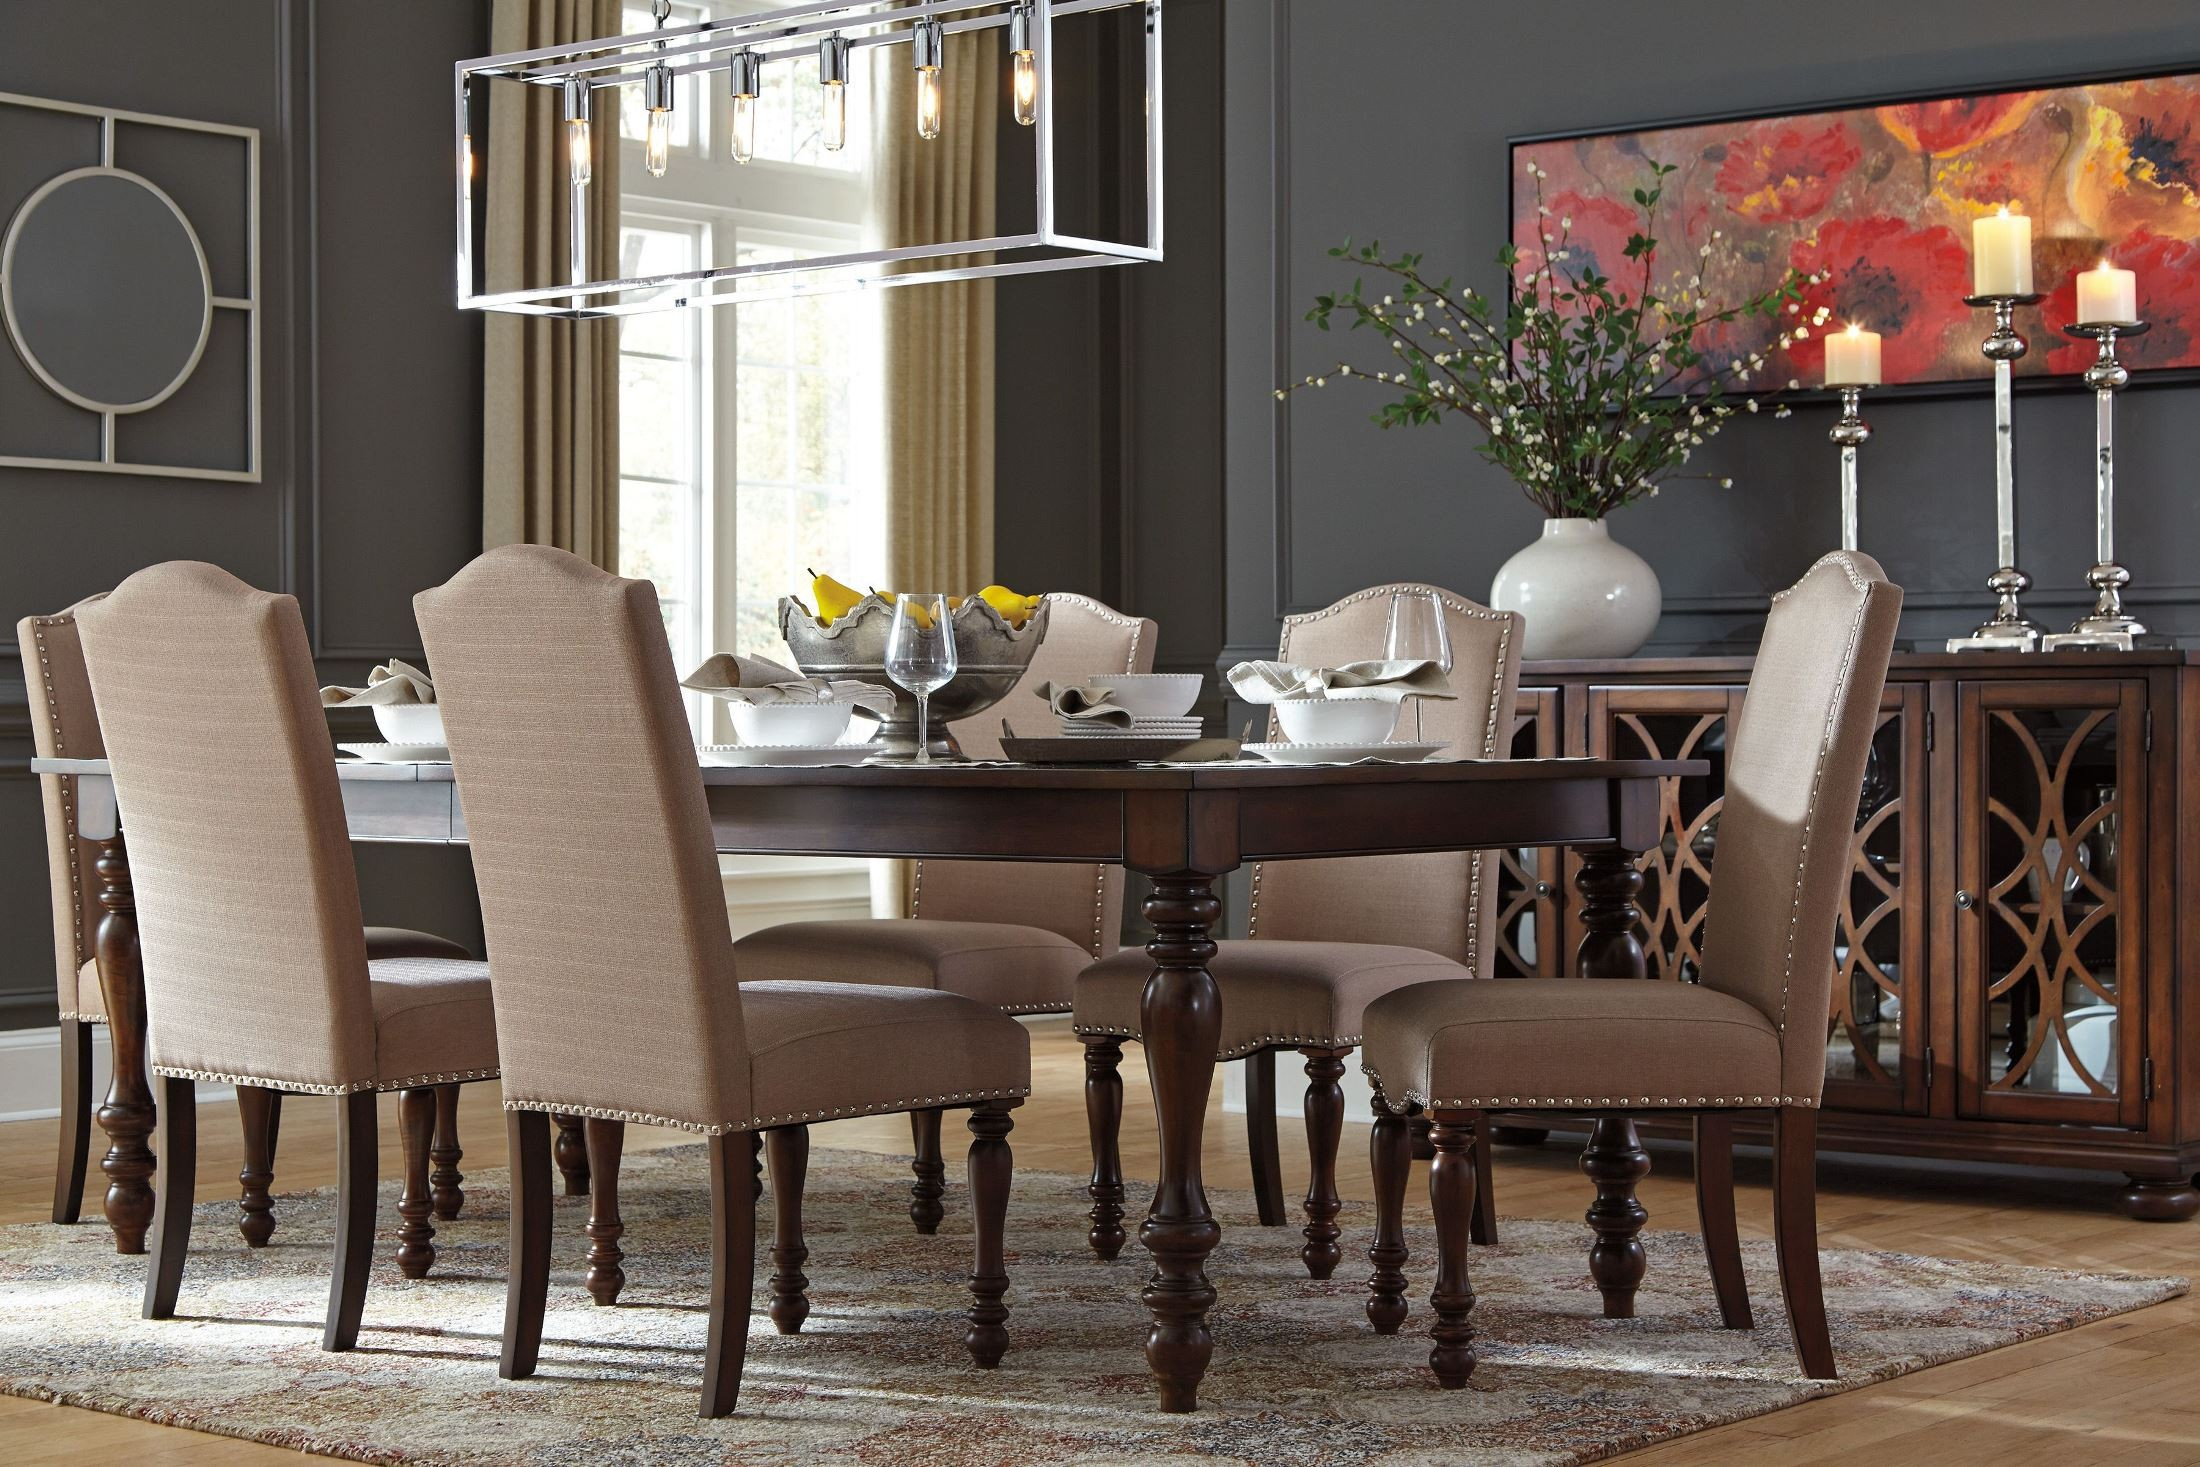 Ideas High Top Dining Table High Top Dining Room Tables  : d506 35 016 60 ahs1 from apachewe.us size 2200 x 1467 jpeg 754kB